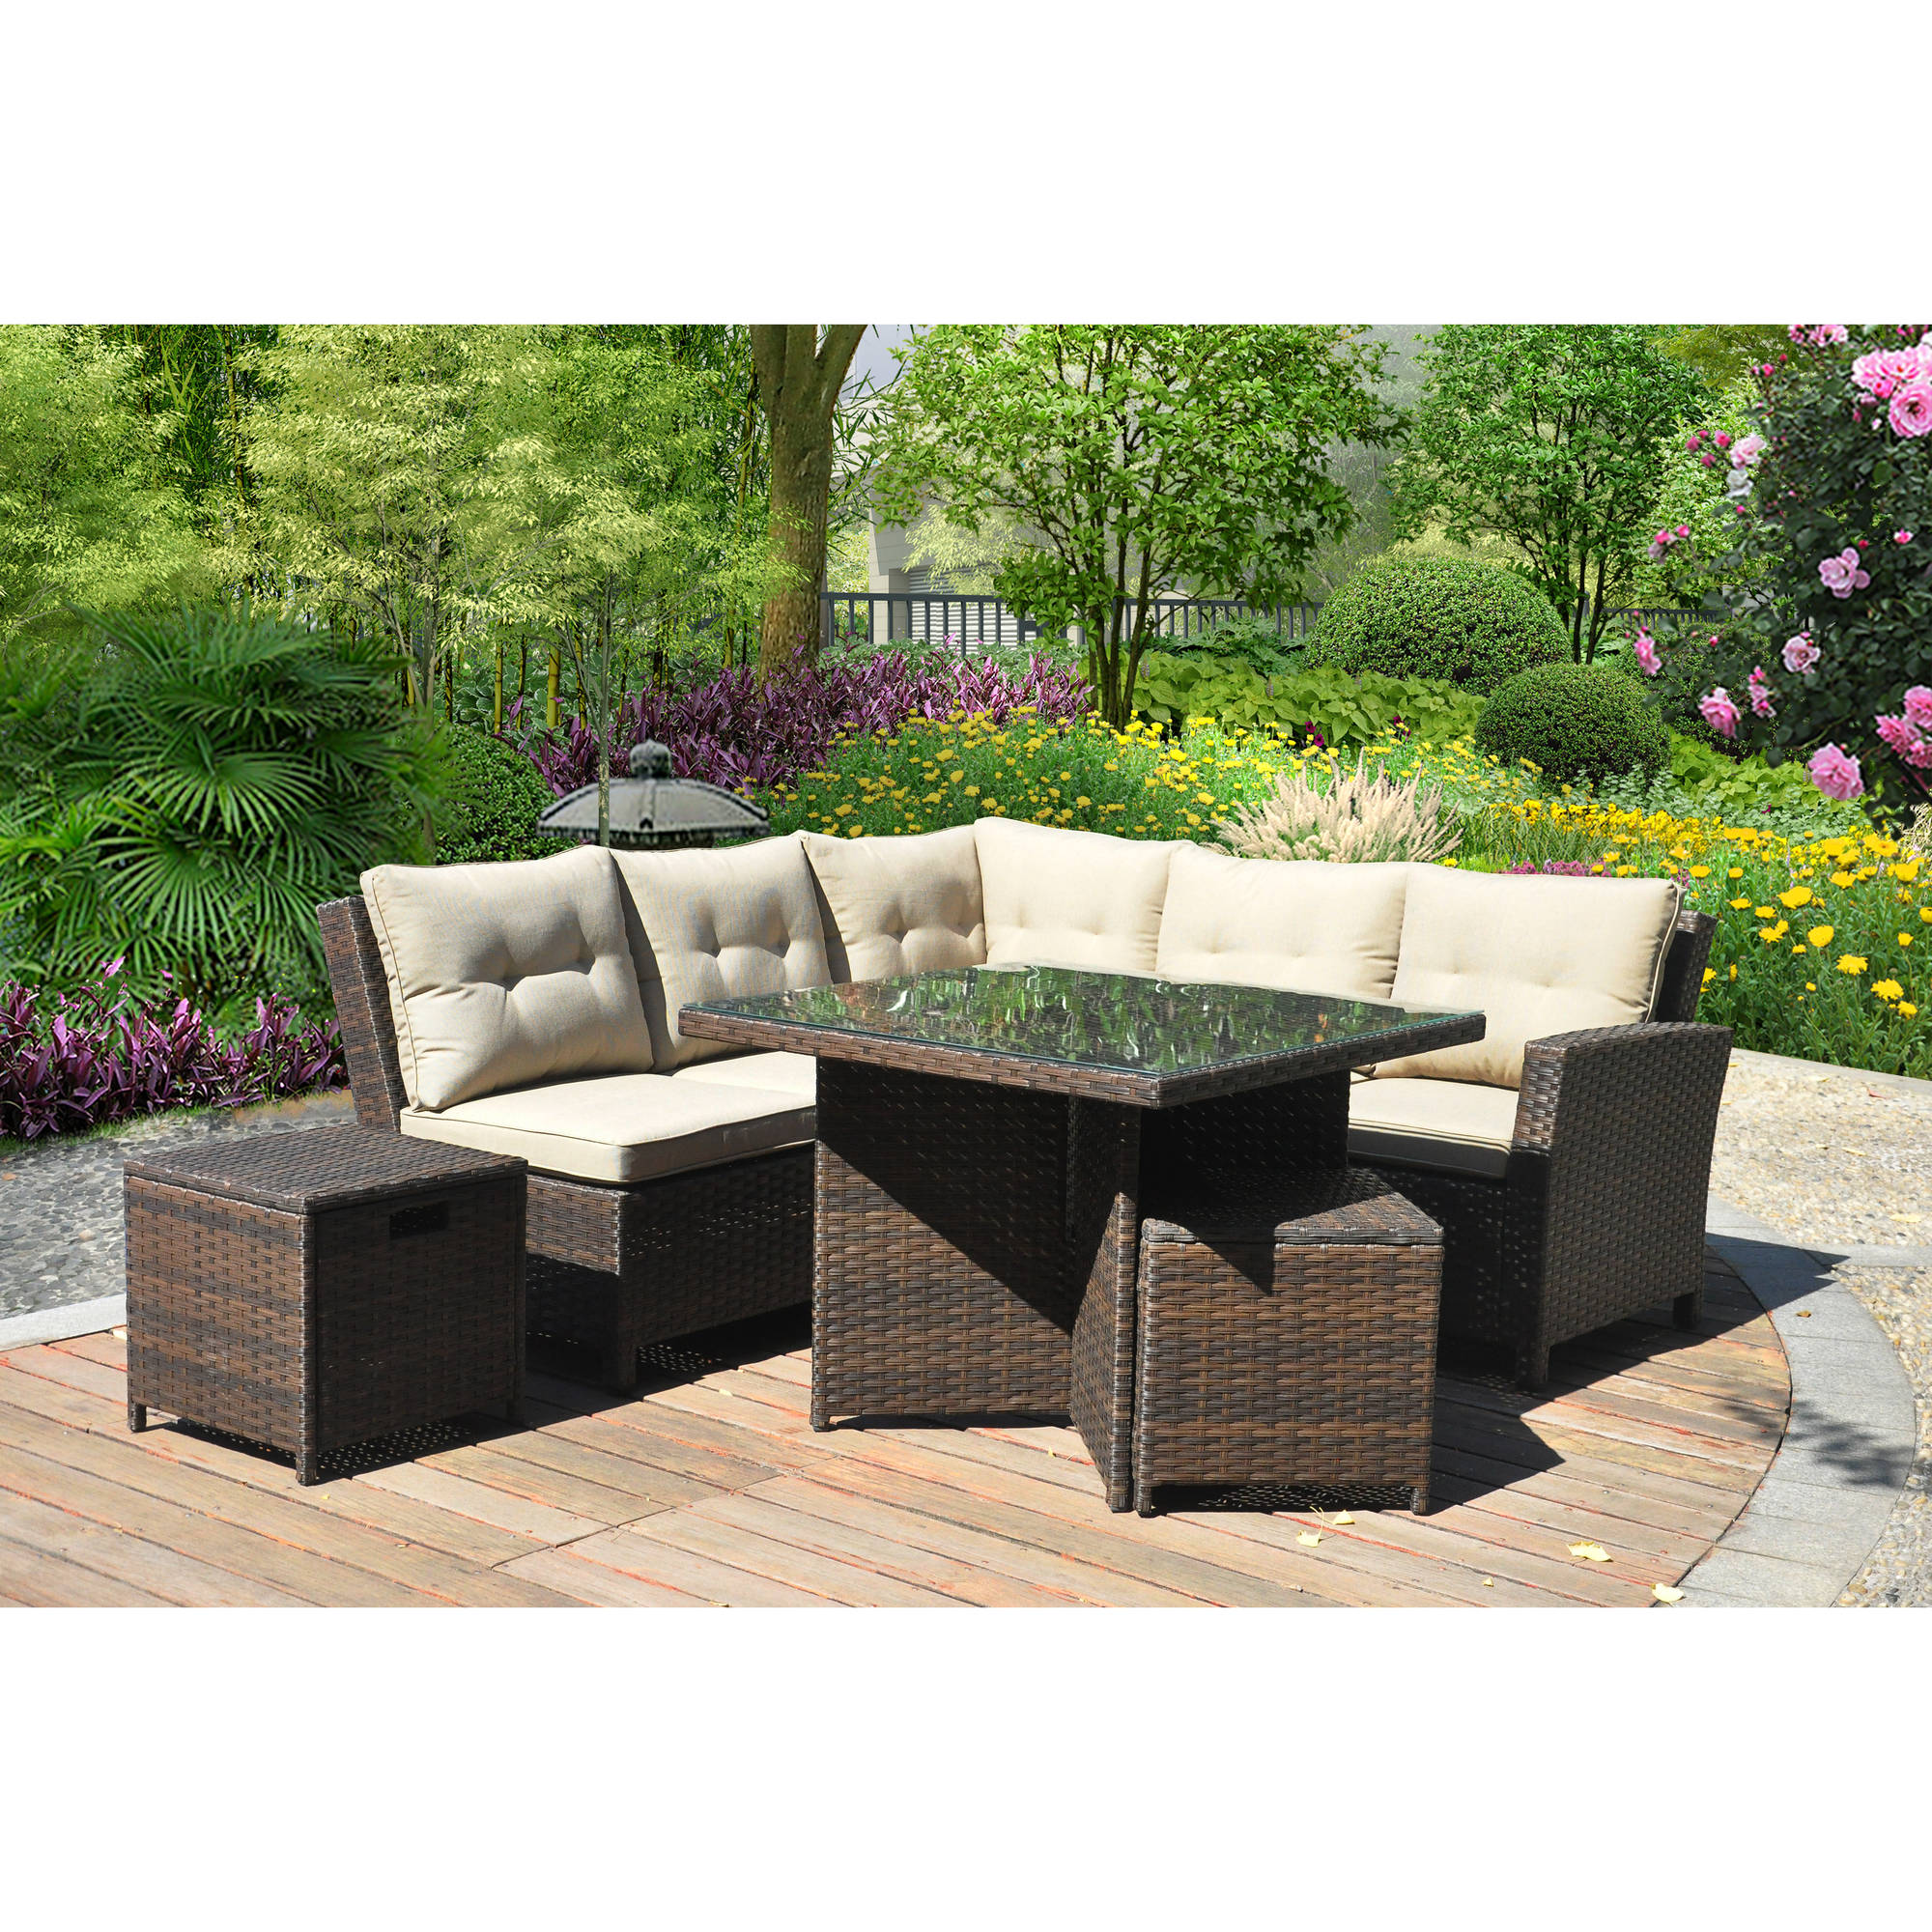 Better Homes And Gardens Baytown 5 Piece Woveu2026